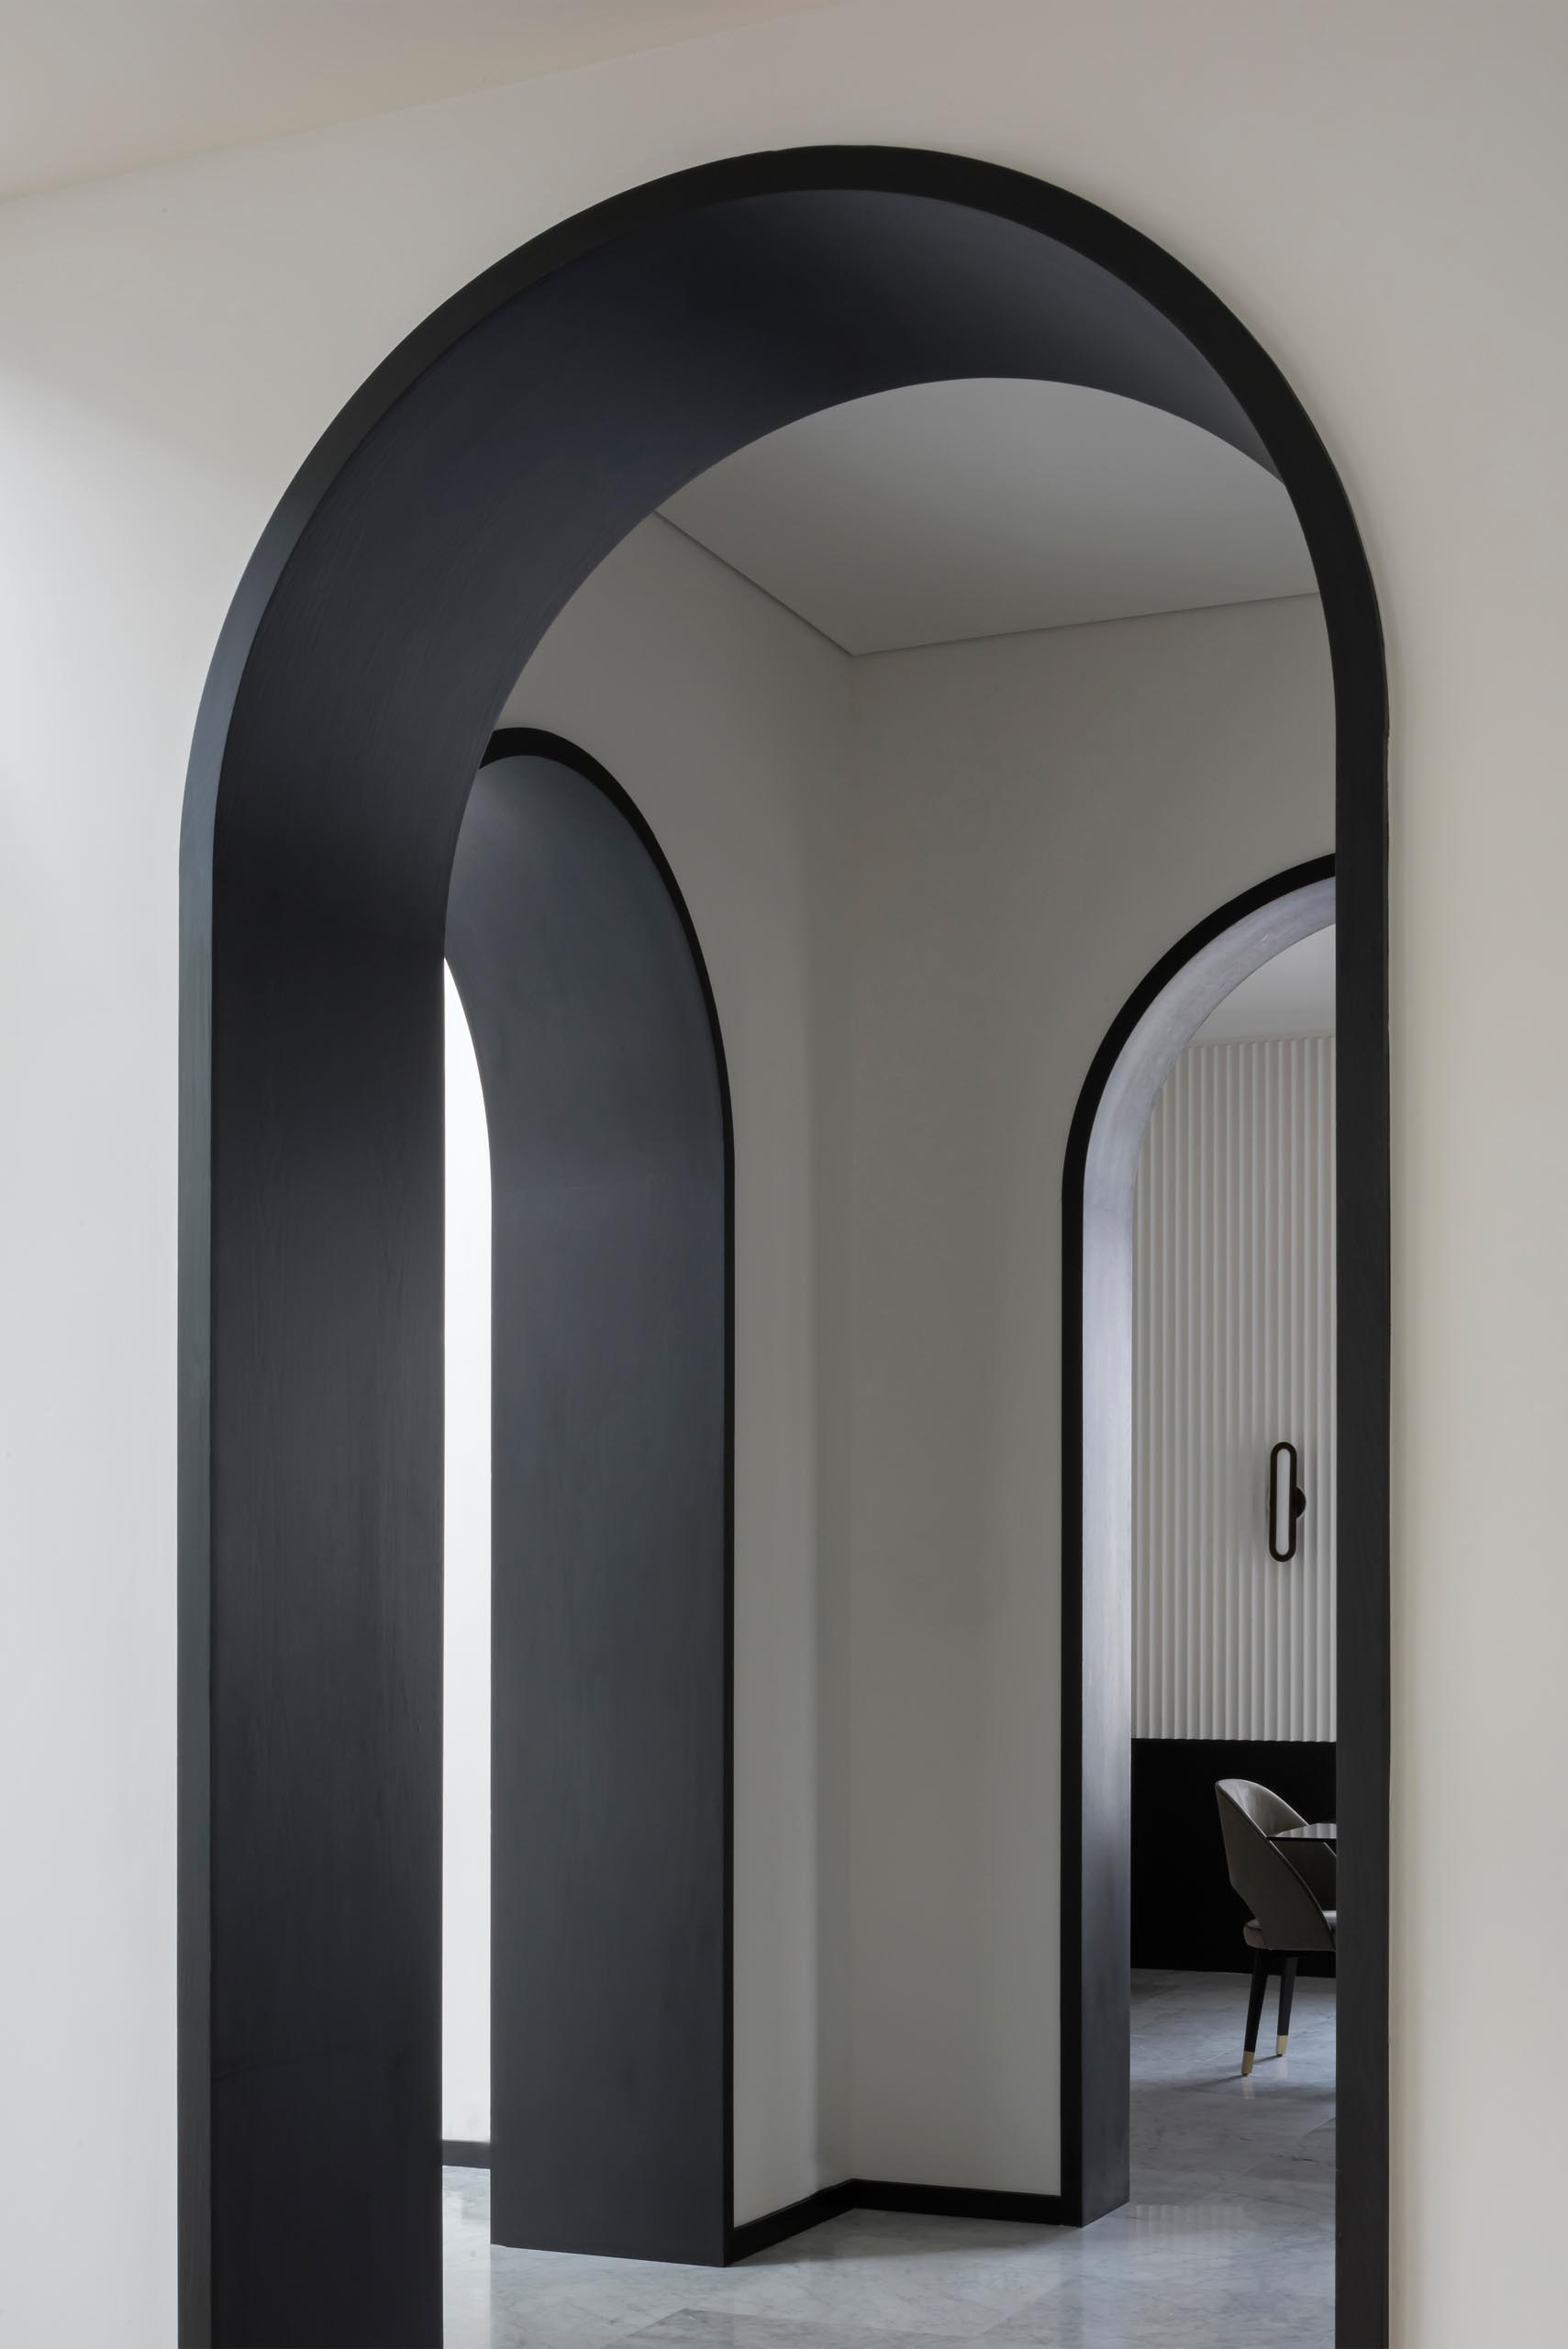 The black lined arches meet with the trim at the bottom of the walls, which wraps around the rooms, as well as the black window frames and stairs structure.